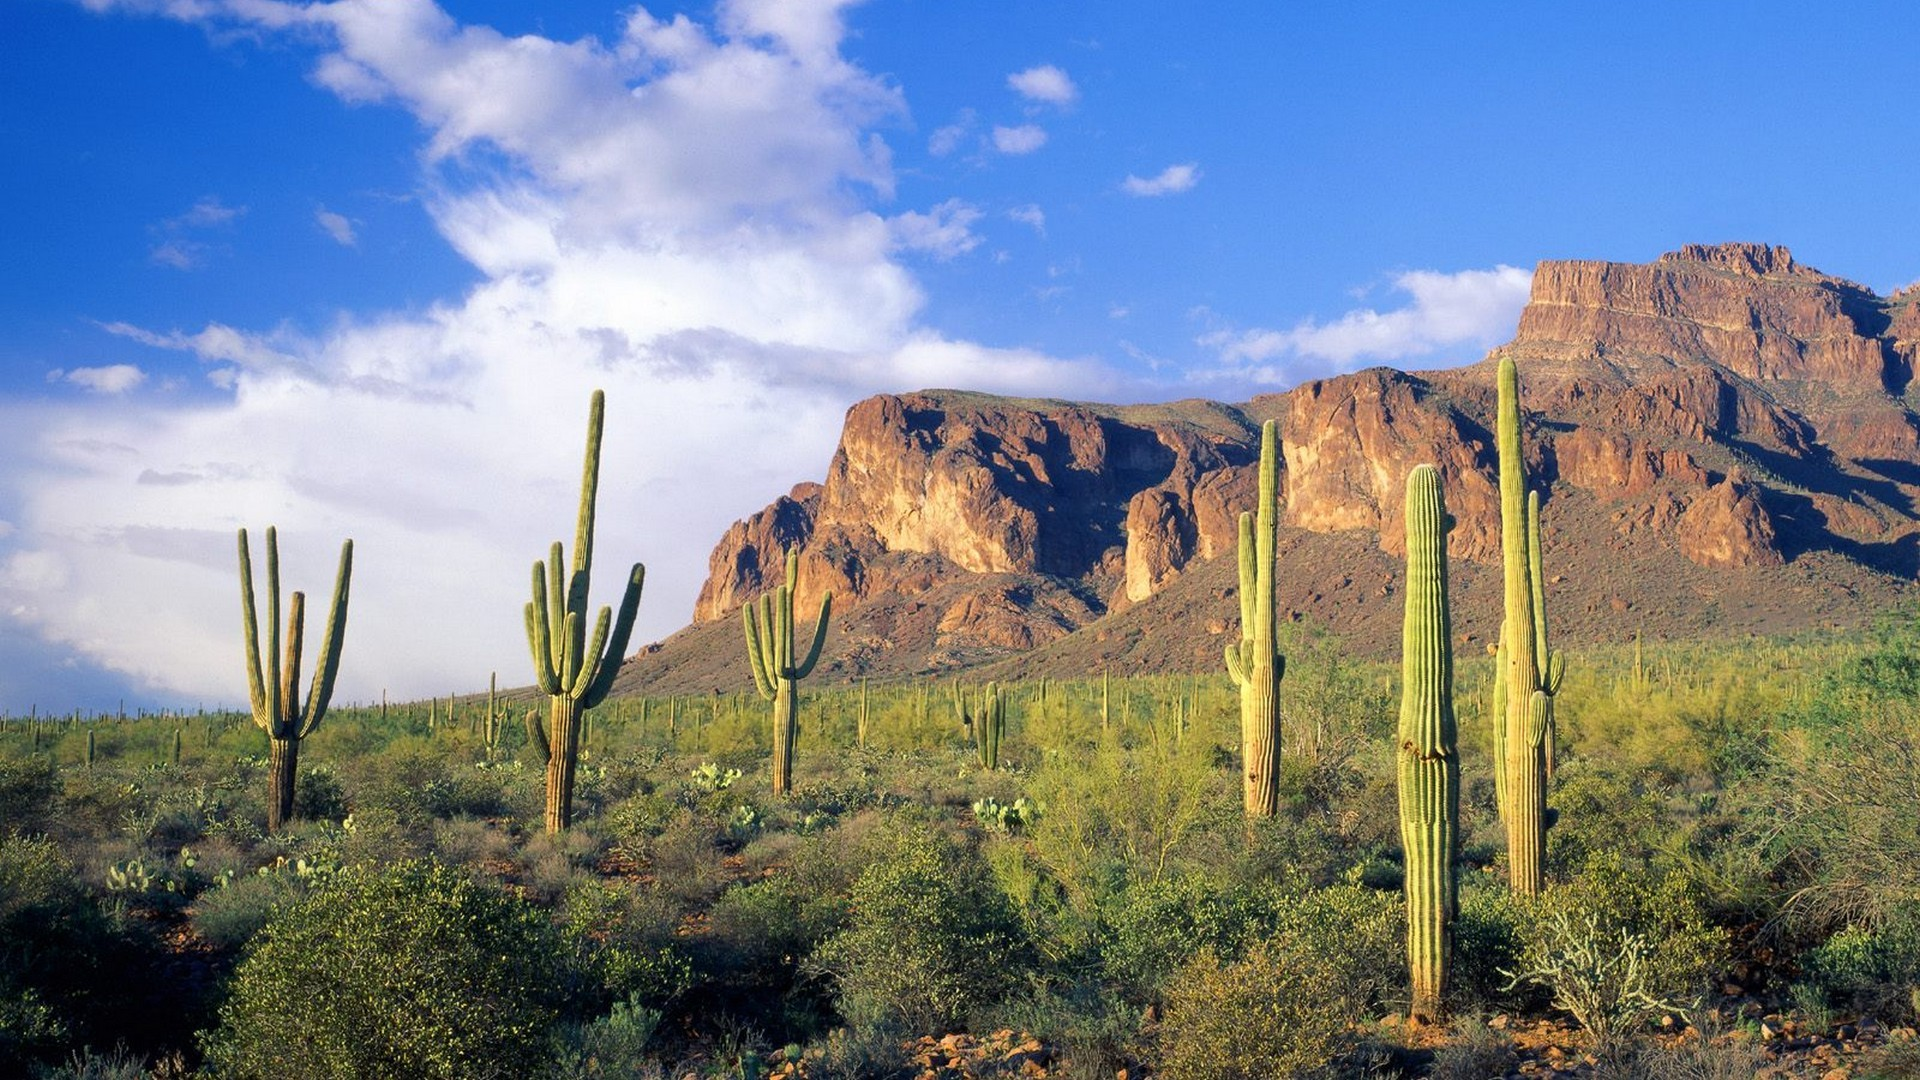 Arizona saloon cactus landscape western hdr f wallpaper 4000x3000 - Landscapes Forests Arizona National Cactus Tonto Wallpaper Background